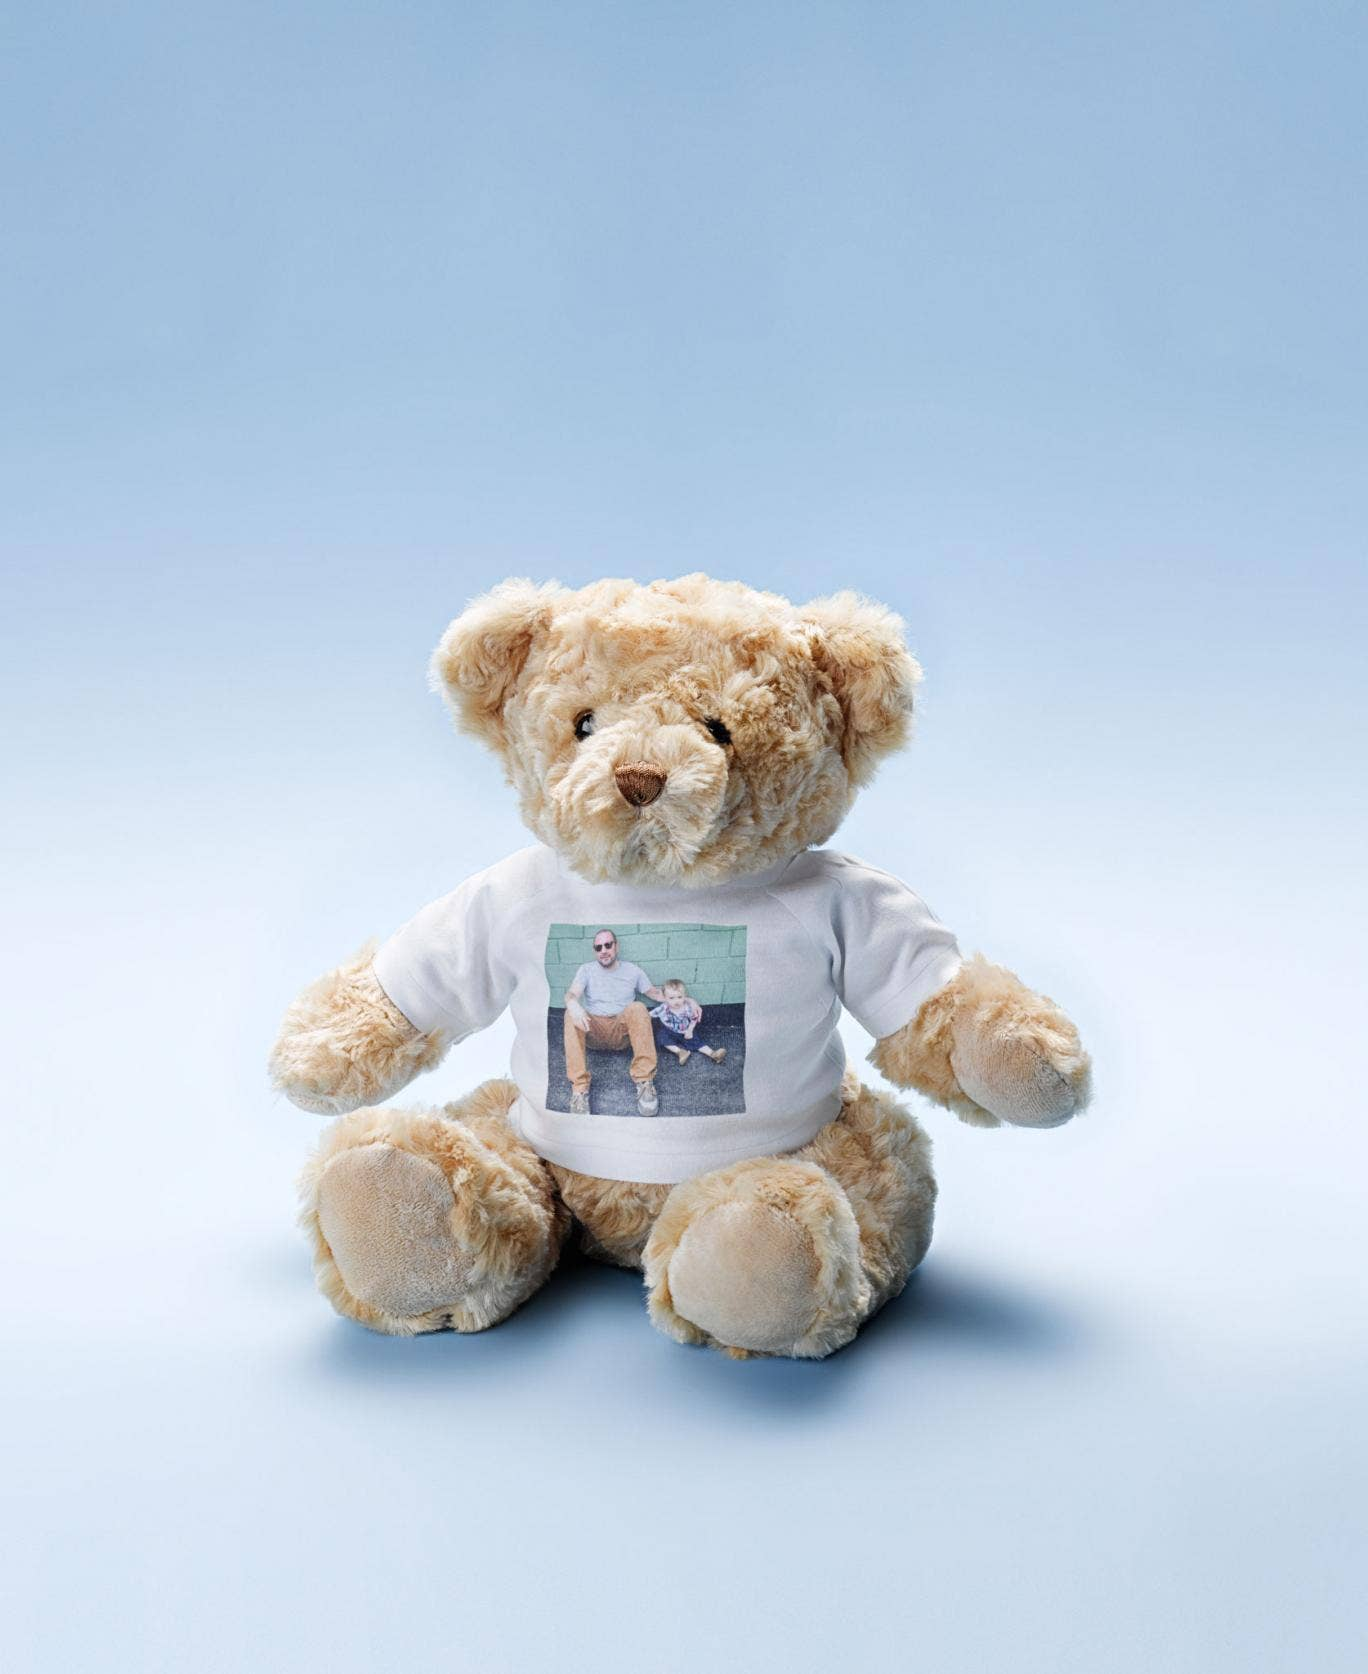 Bear necessities: Specialised personal-product printing has survived and thrived through recession